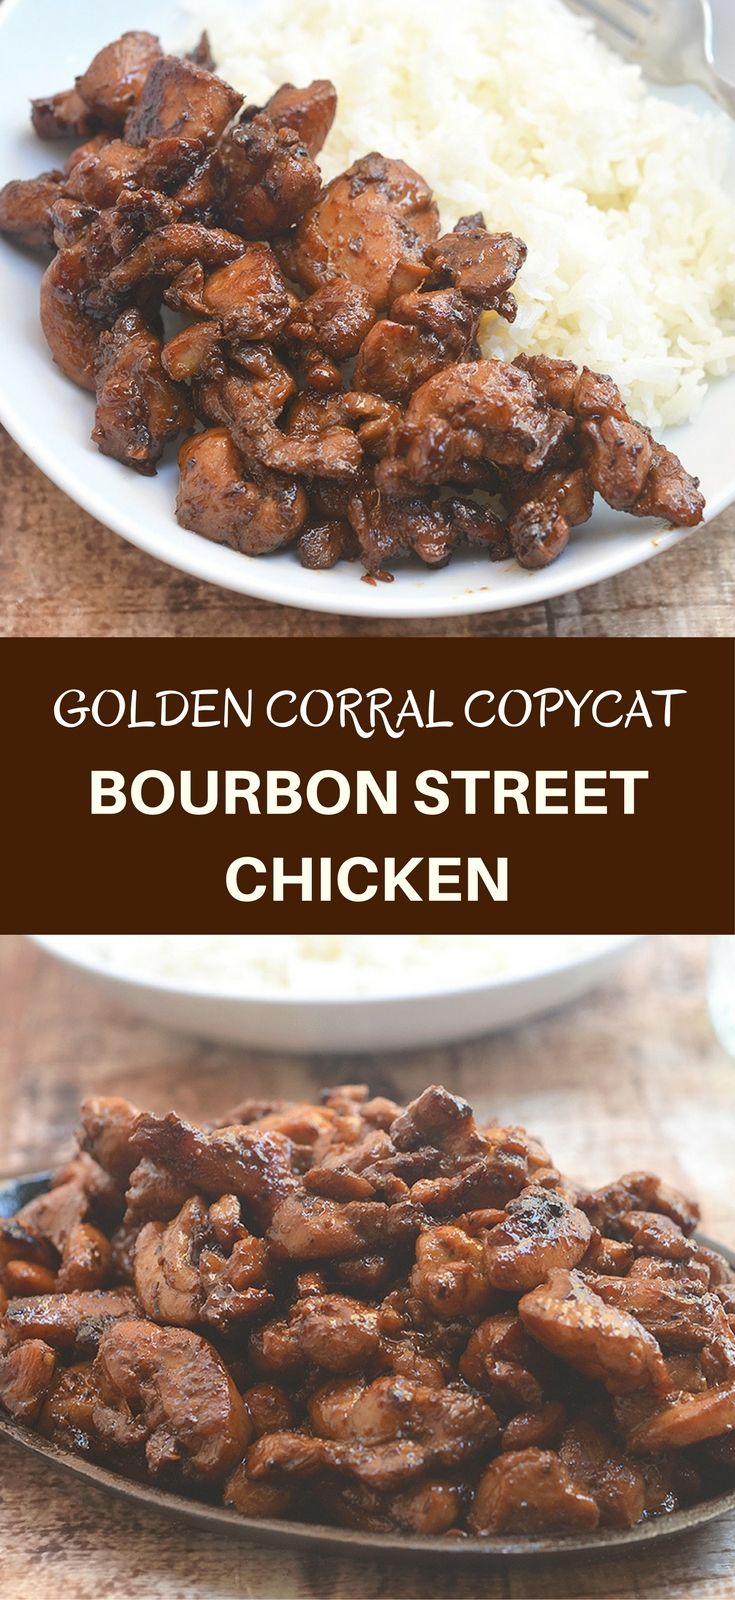 Golden Corral Bourbon Street Chicken Copycat brings all the sweet, sticky, salty and yummy flavors you love right in your own kitchen. Only five ingredients and less than 20 minutes of cook time for an amazing dinner meal the whole family will love!